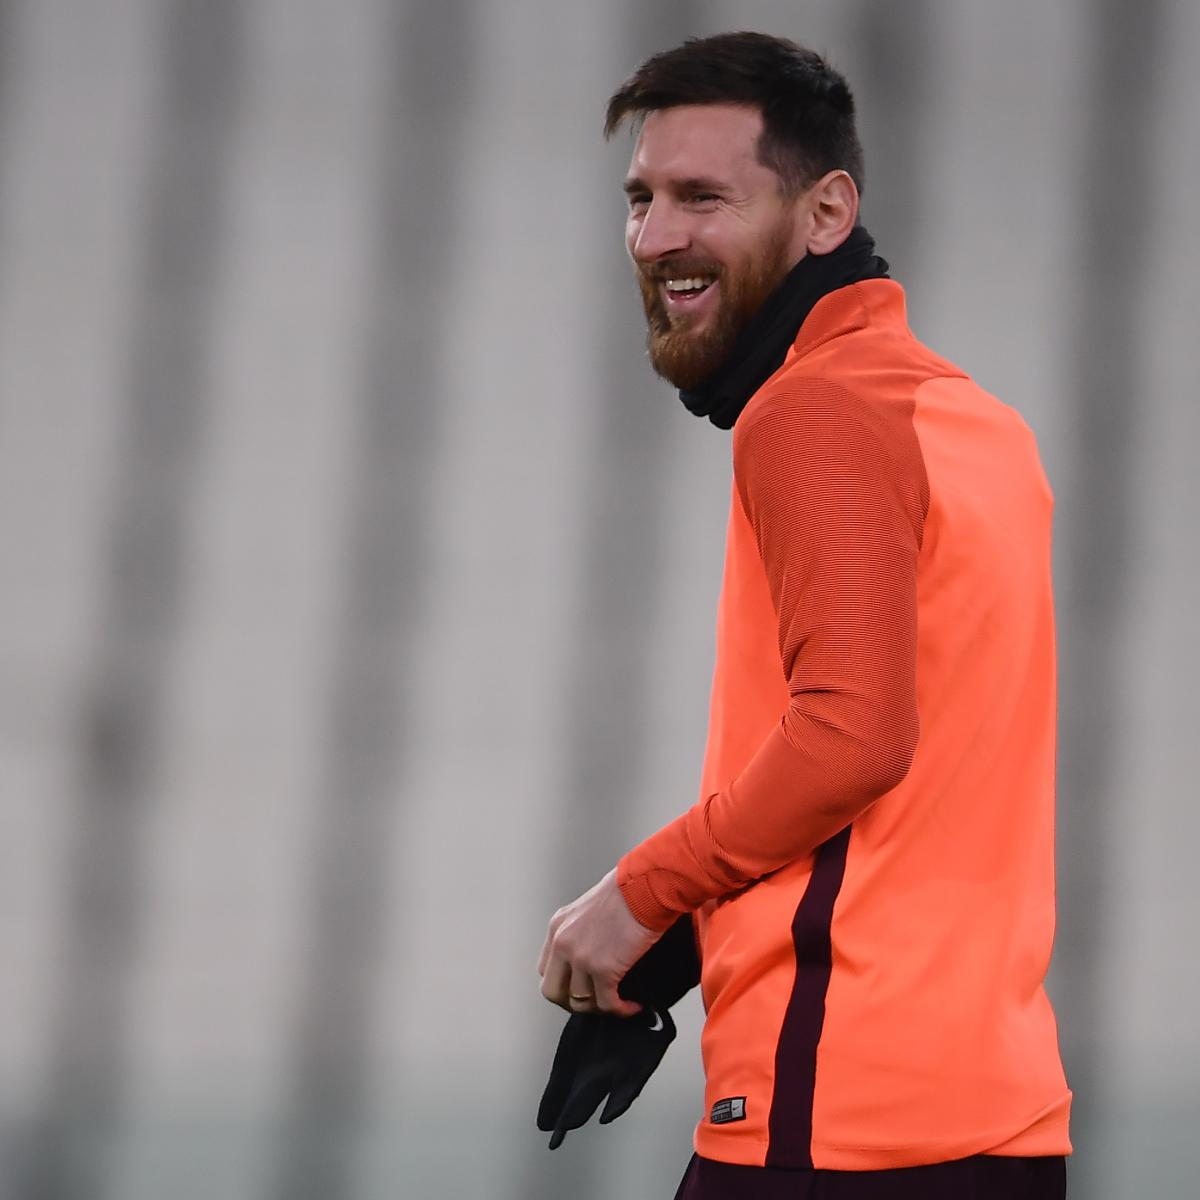 Lionel Messi Talks Newell's Old Boys 'Dream,' Argentina World Cup Hopes